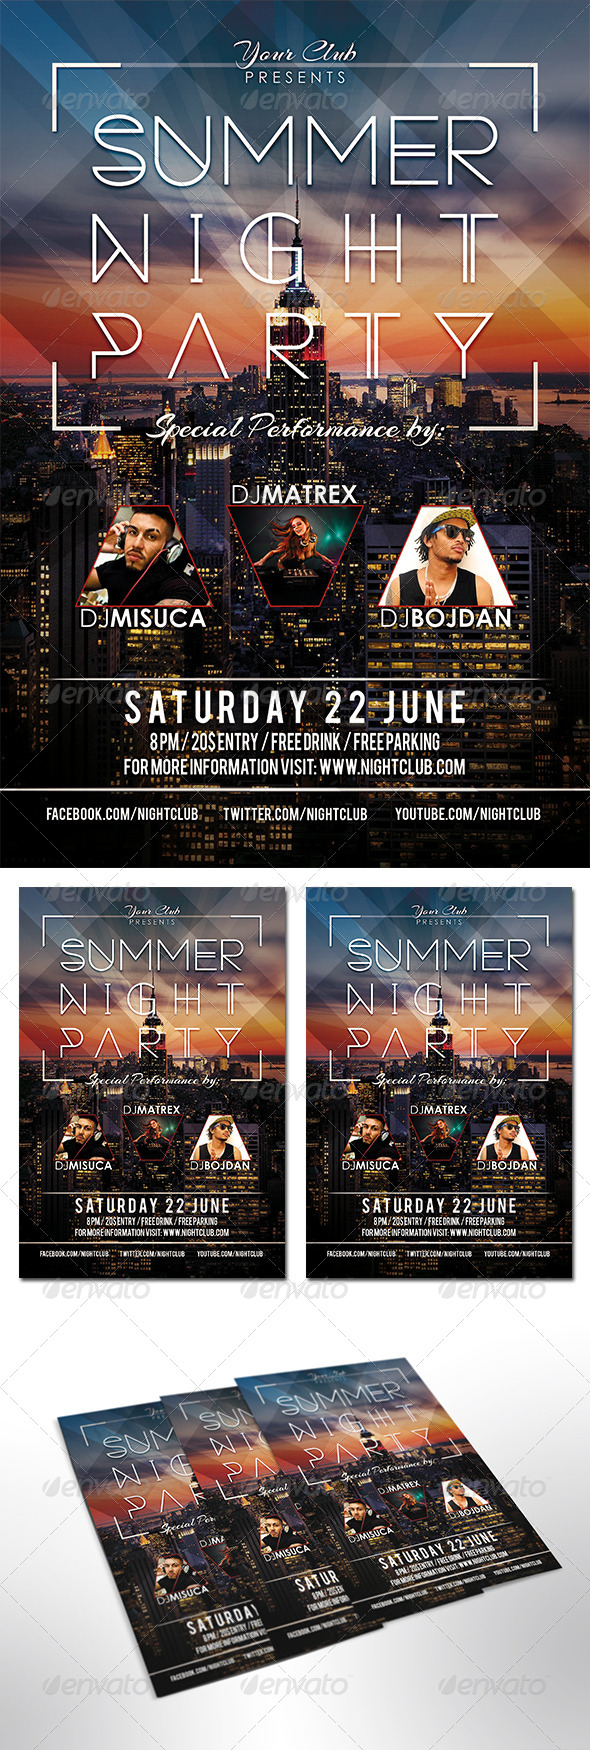 Summer Night Party Flyer - Print Templates